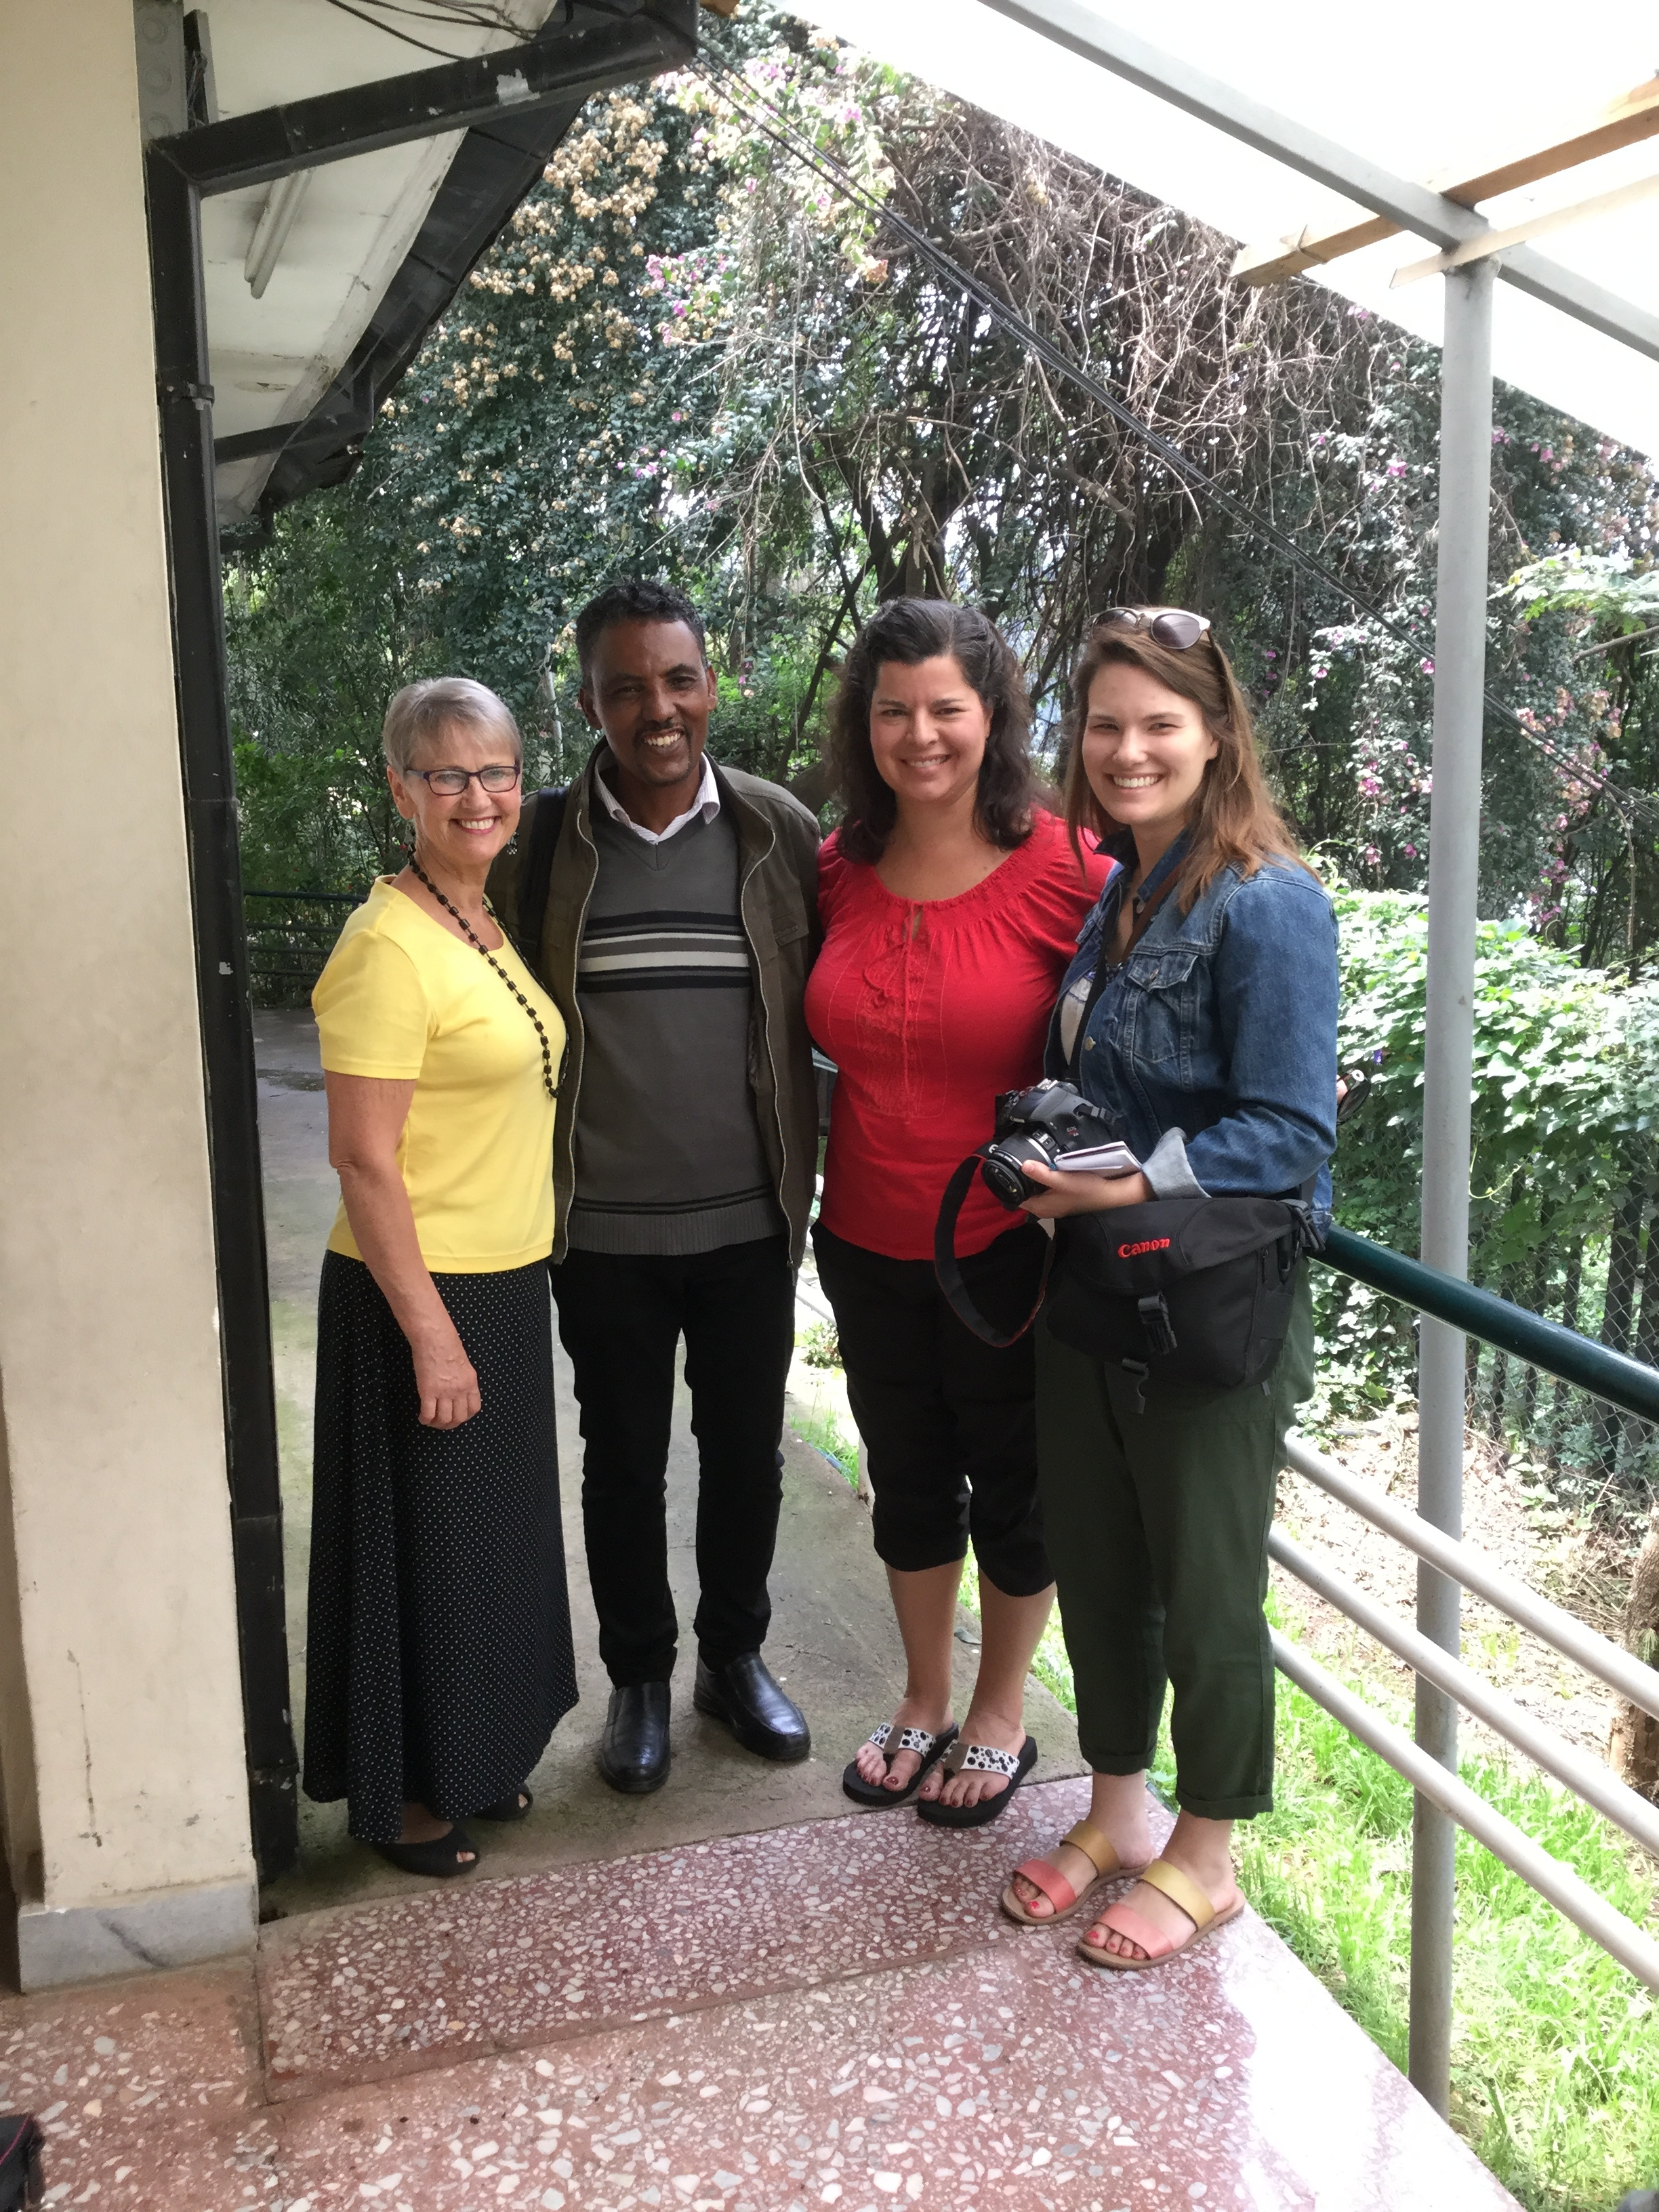 Val, Shelley and Megan with Zenebe Mesfin, Fistula Hospital Chaplin and our tour guide.